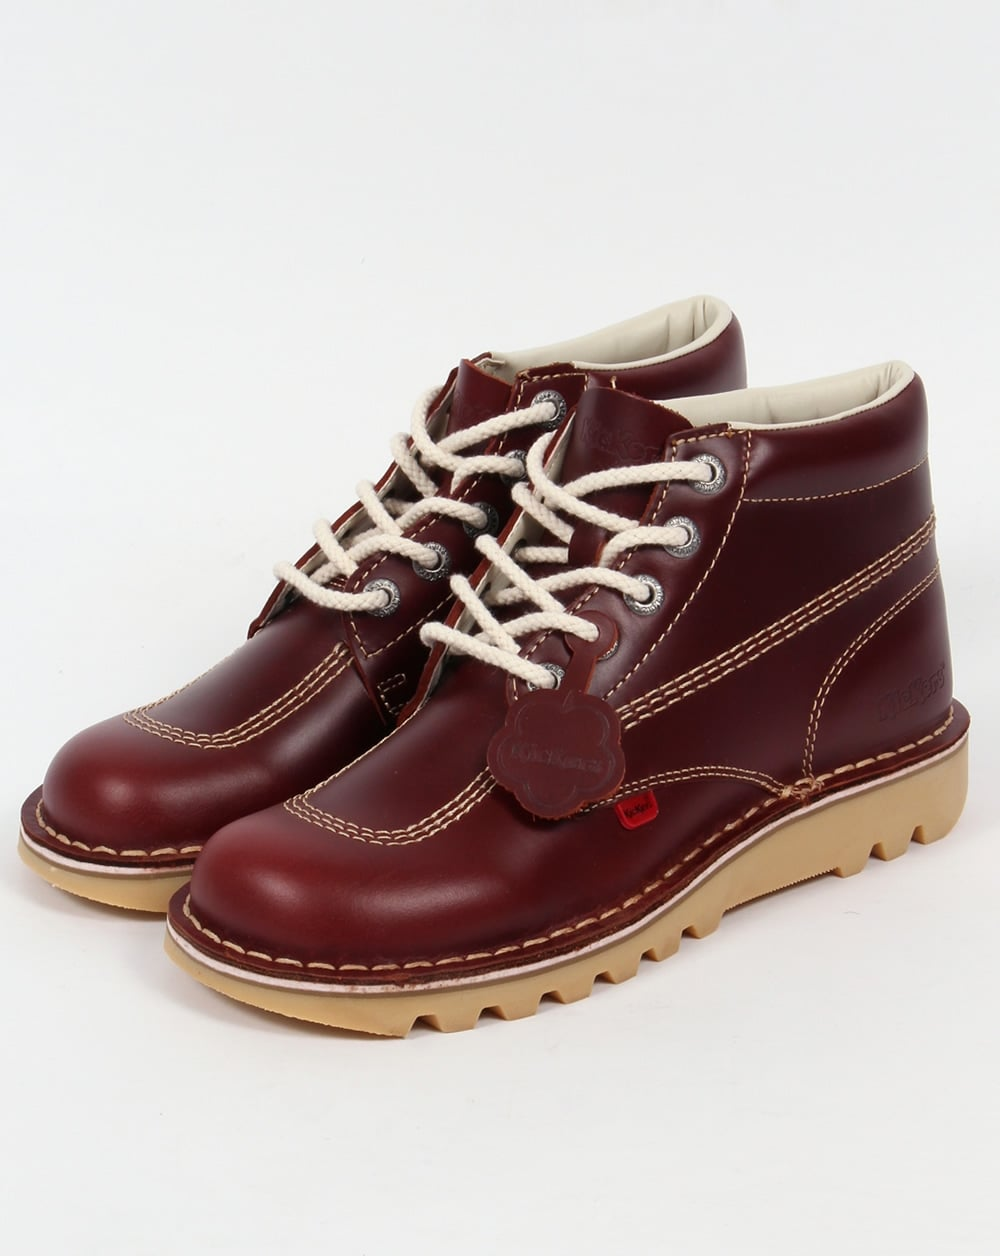 Kickers Kick Hi Boots leather cherry